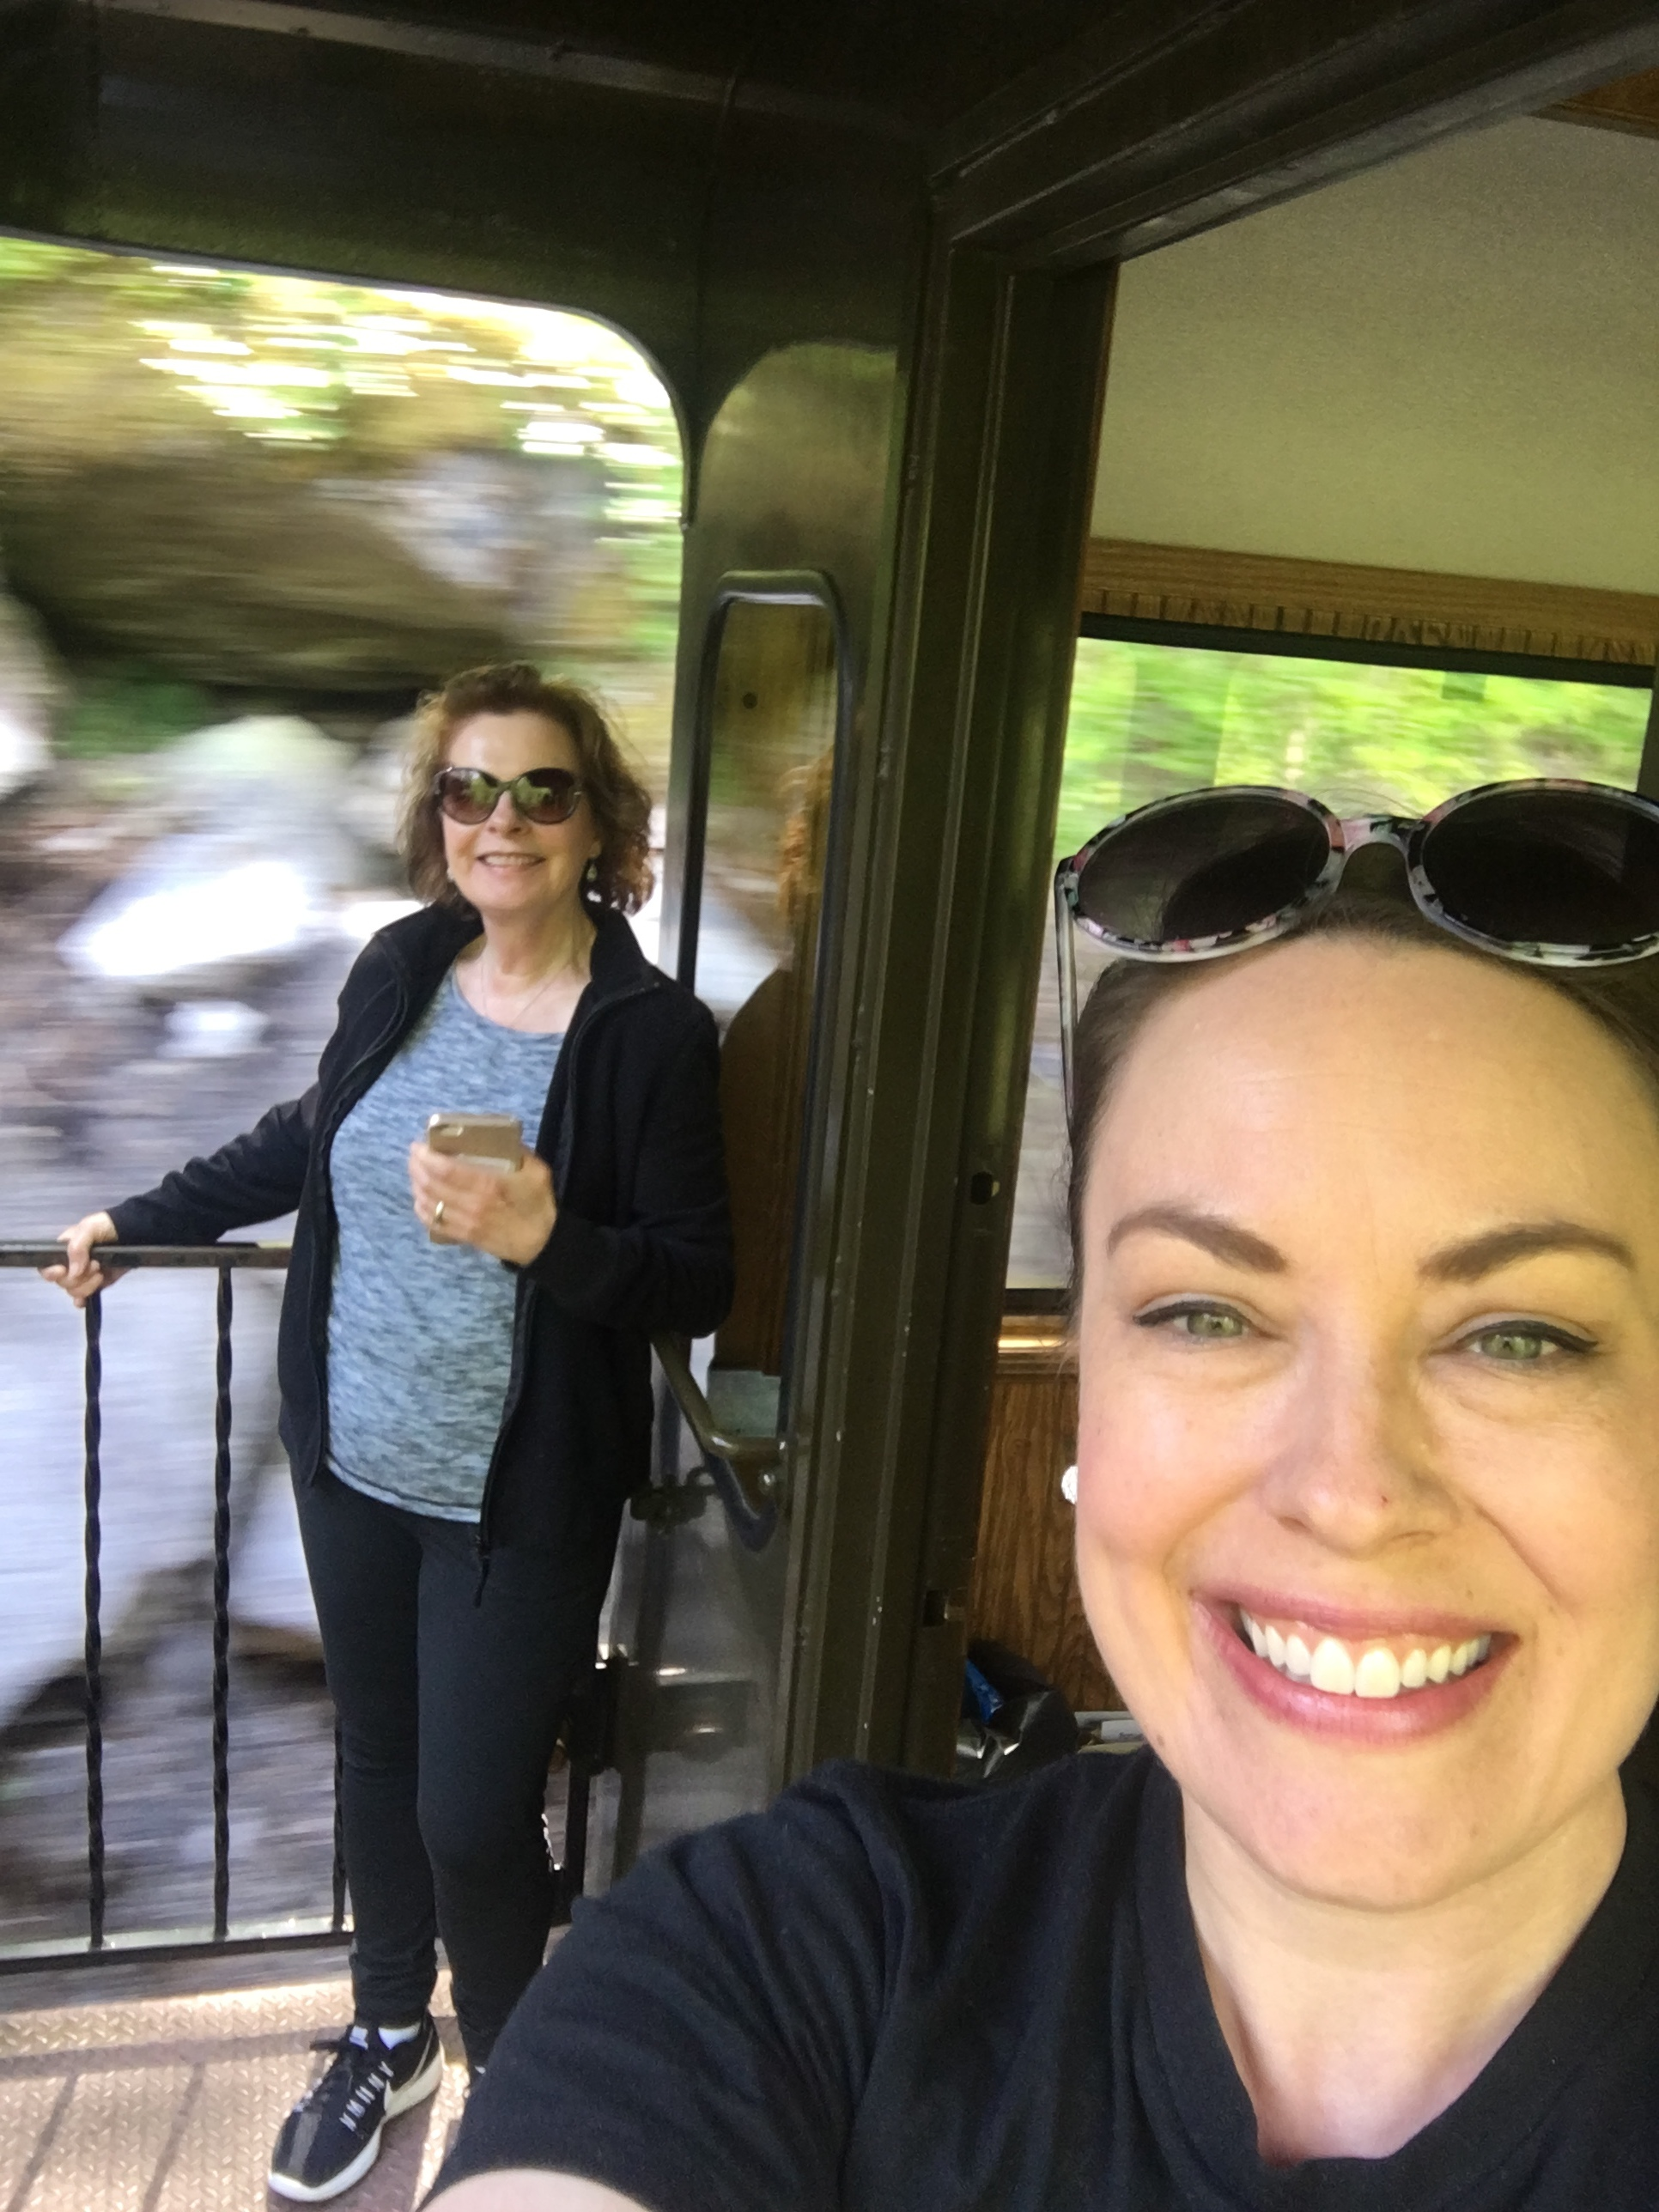 We took a train tour at Skagway, Alaska. Everyone told us that if we only took one excursion on the cruise, this was it! They were right.